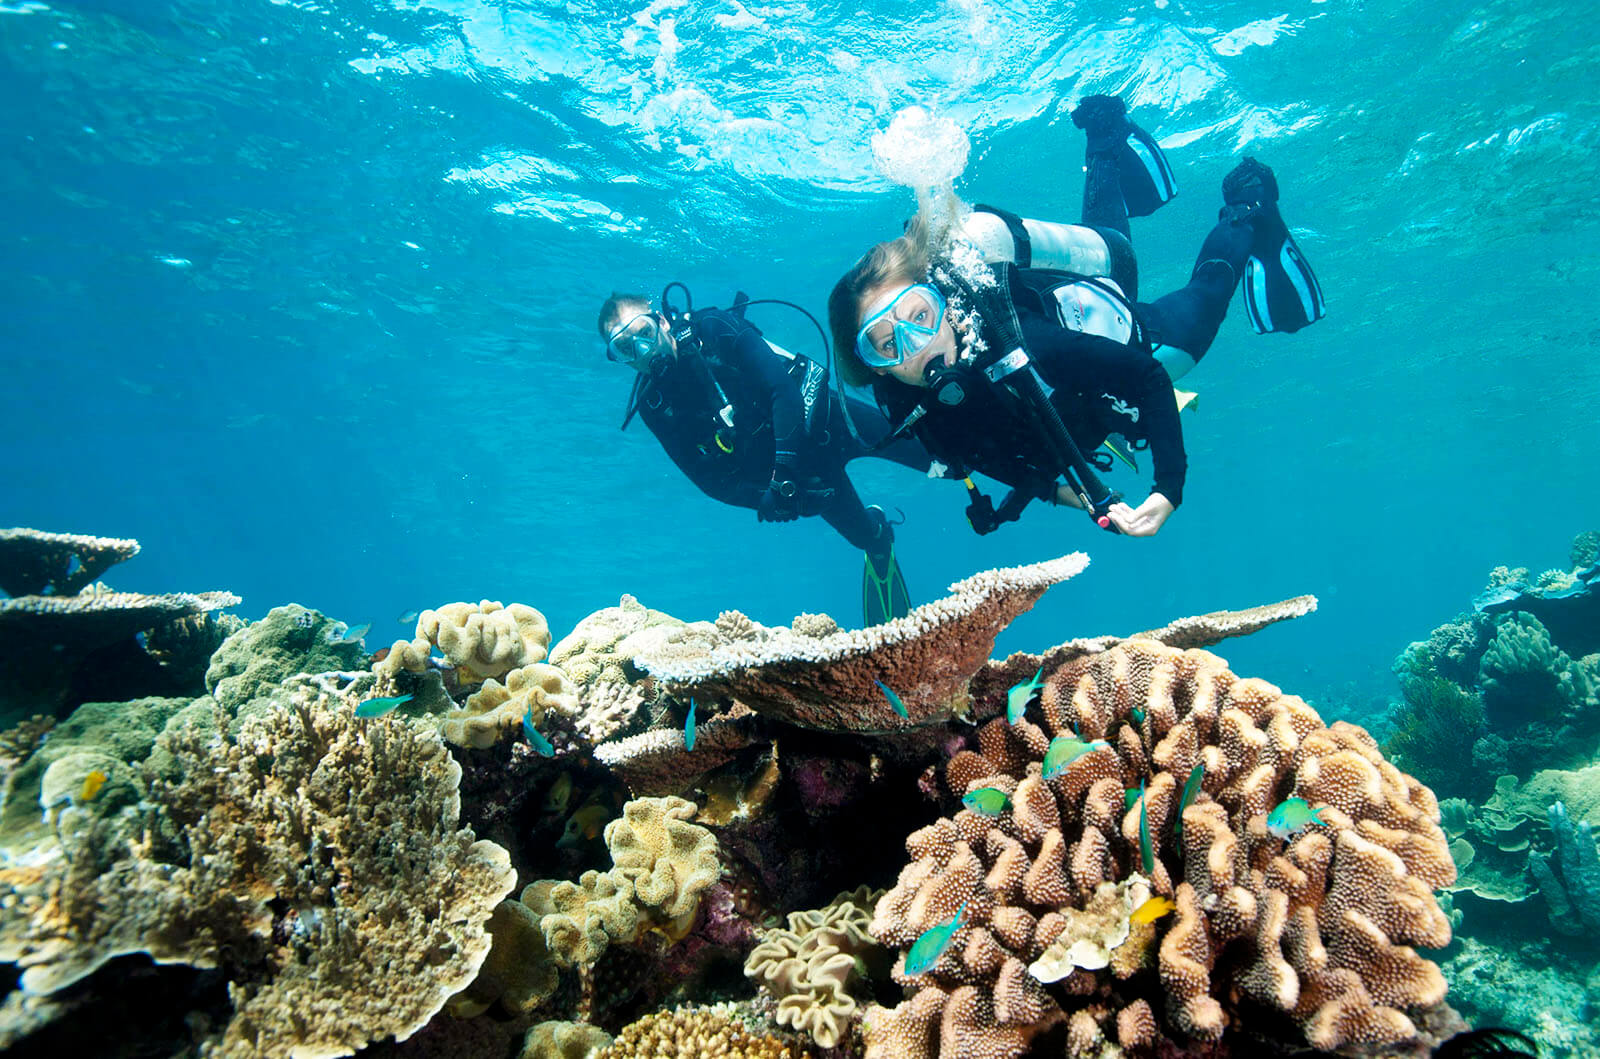 5ad6bfd98aafbbff645669e3_cairns-scuba-diving-moore-reef-sunlover-reef-cruises